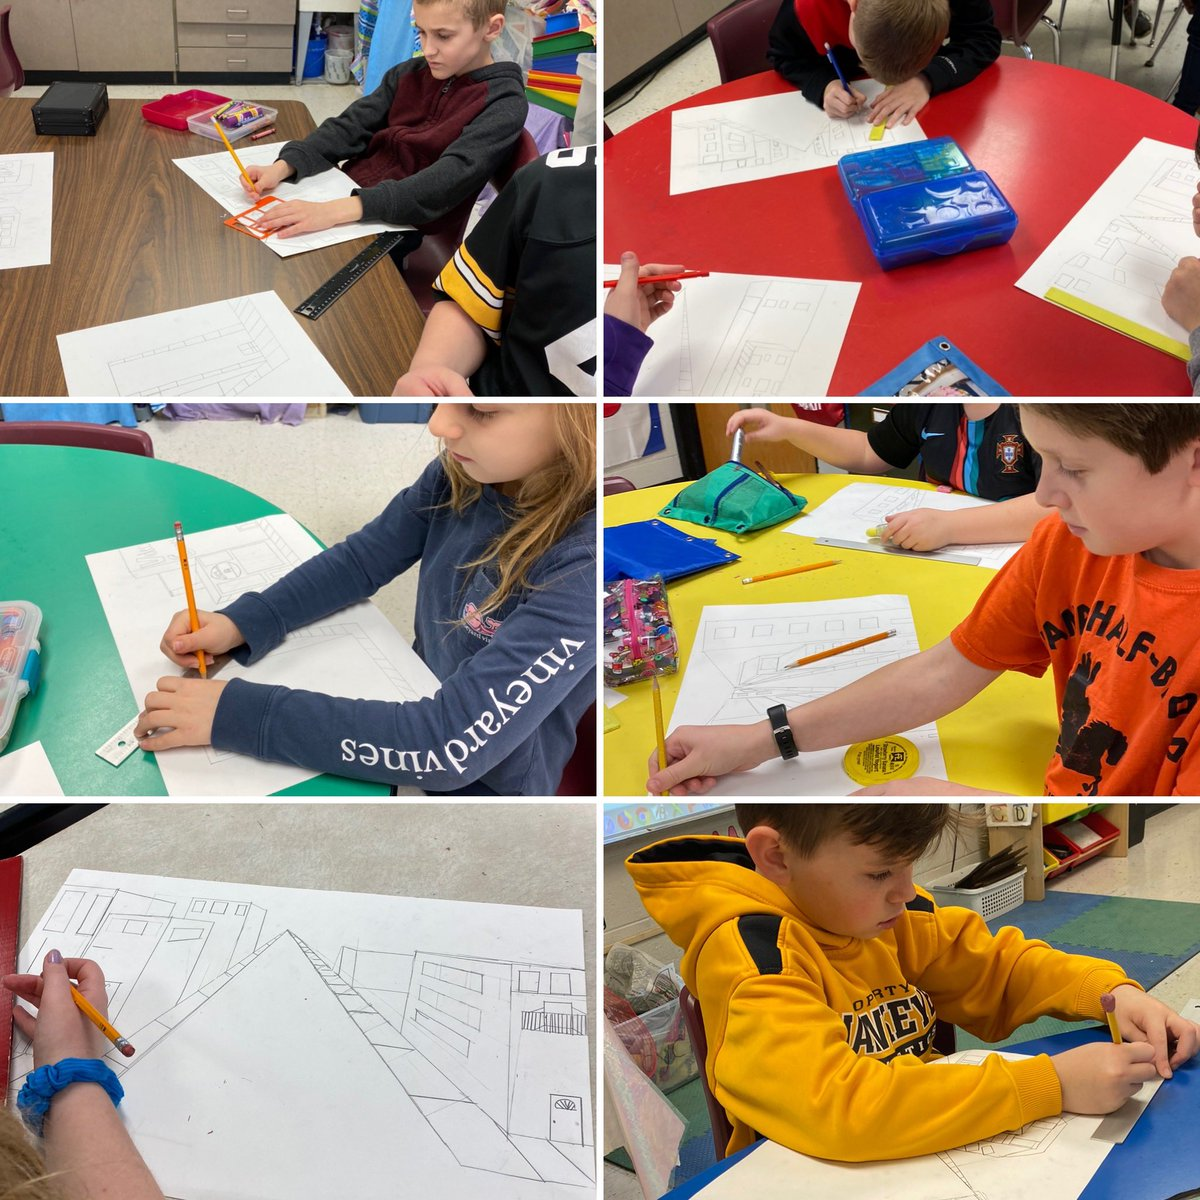 Even with short classes today, 4th graders working hard on 1pt perspective. #lovemyjob #buildingartists #nodaysoffpic.twitter.com/cBPNzra9BD